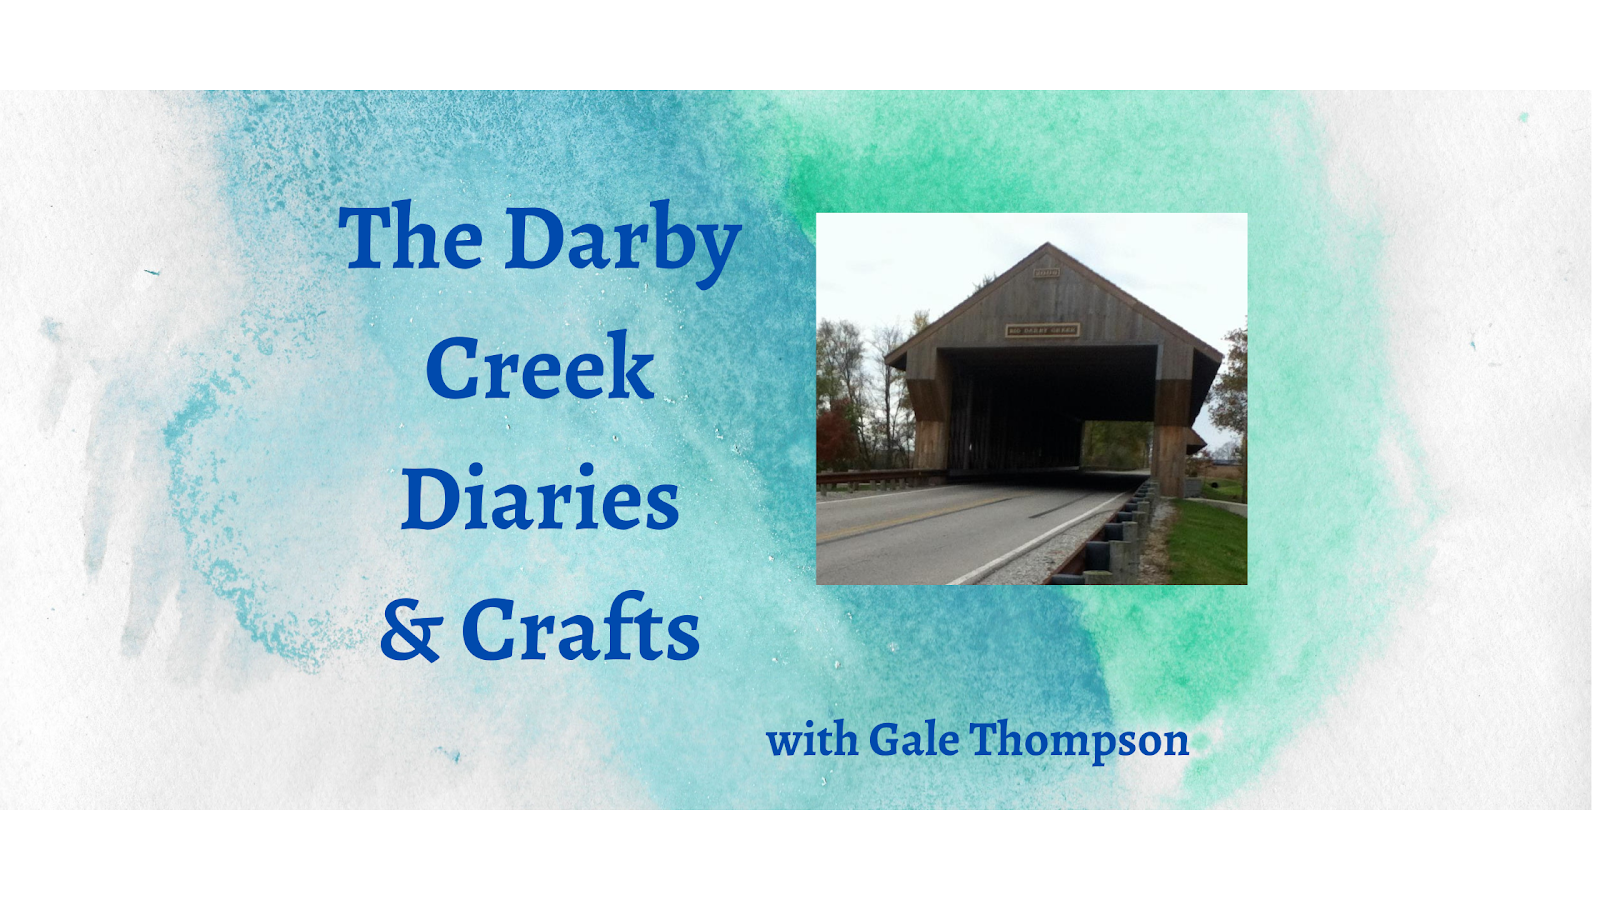 The Darby Creek Diaries 'N Crafts